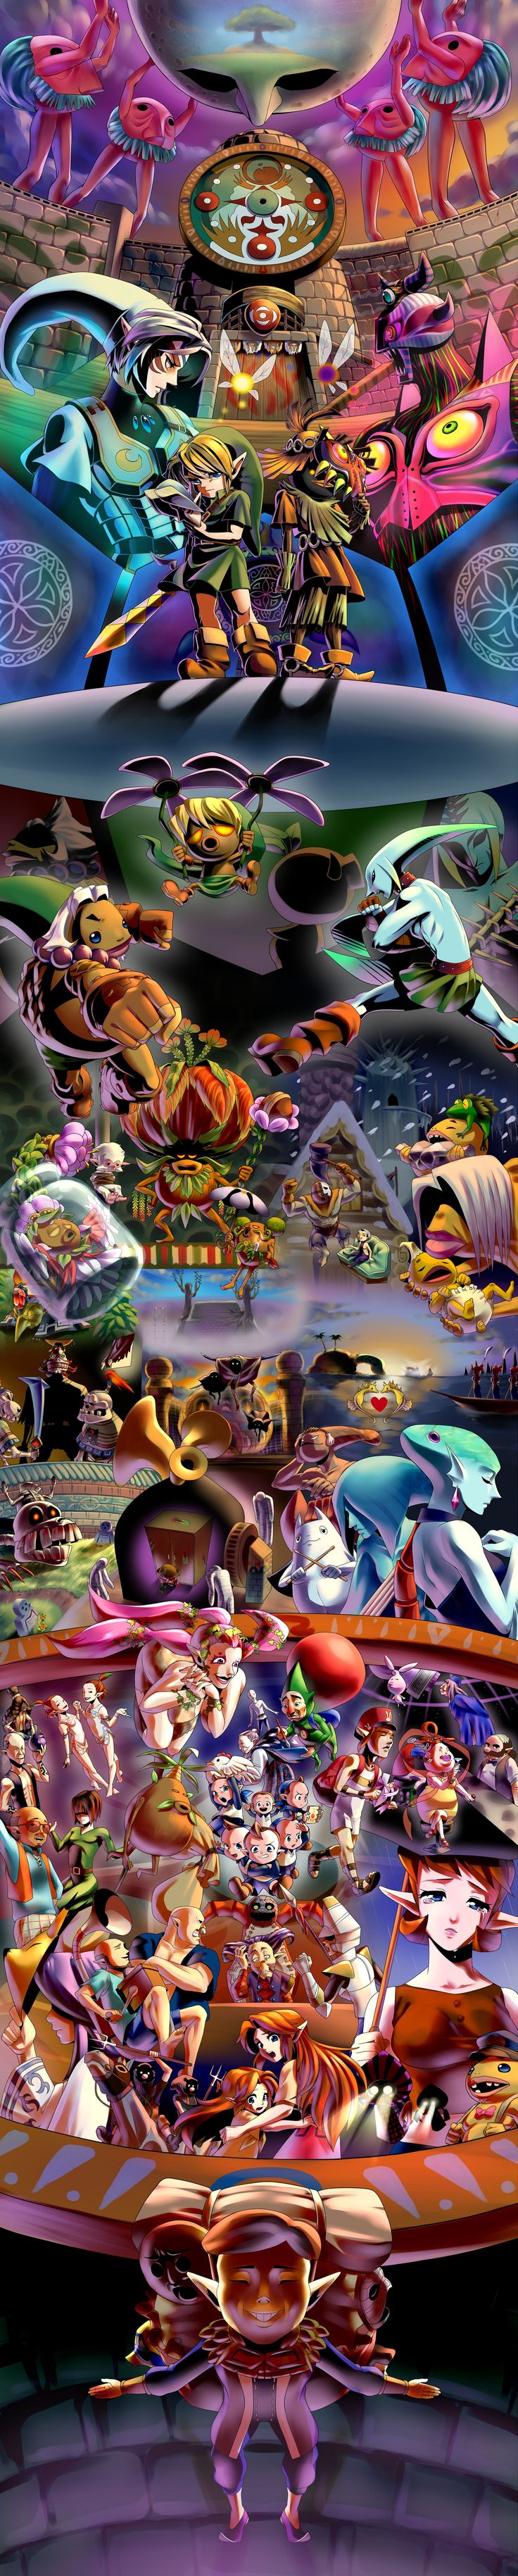 The Legend of Zelda: Majora's Mask / Young Link, Tatl, Skull Kid, and etc.